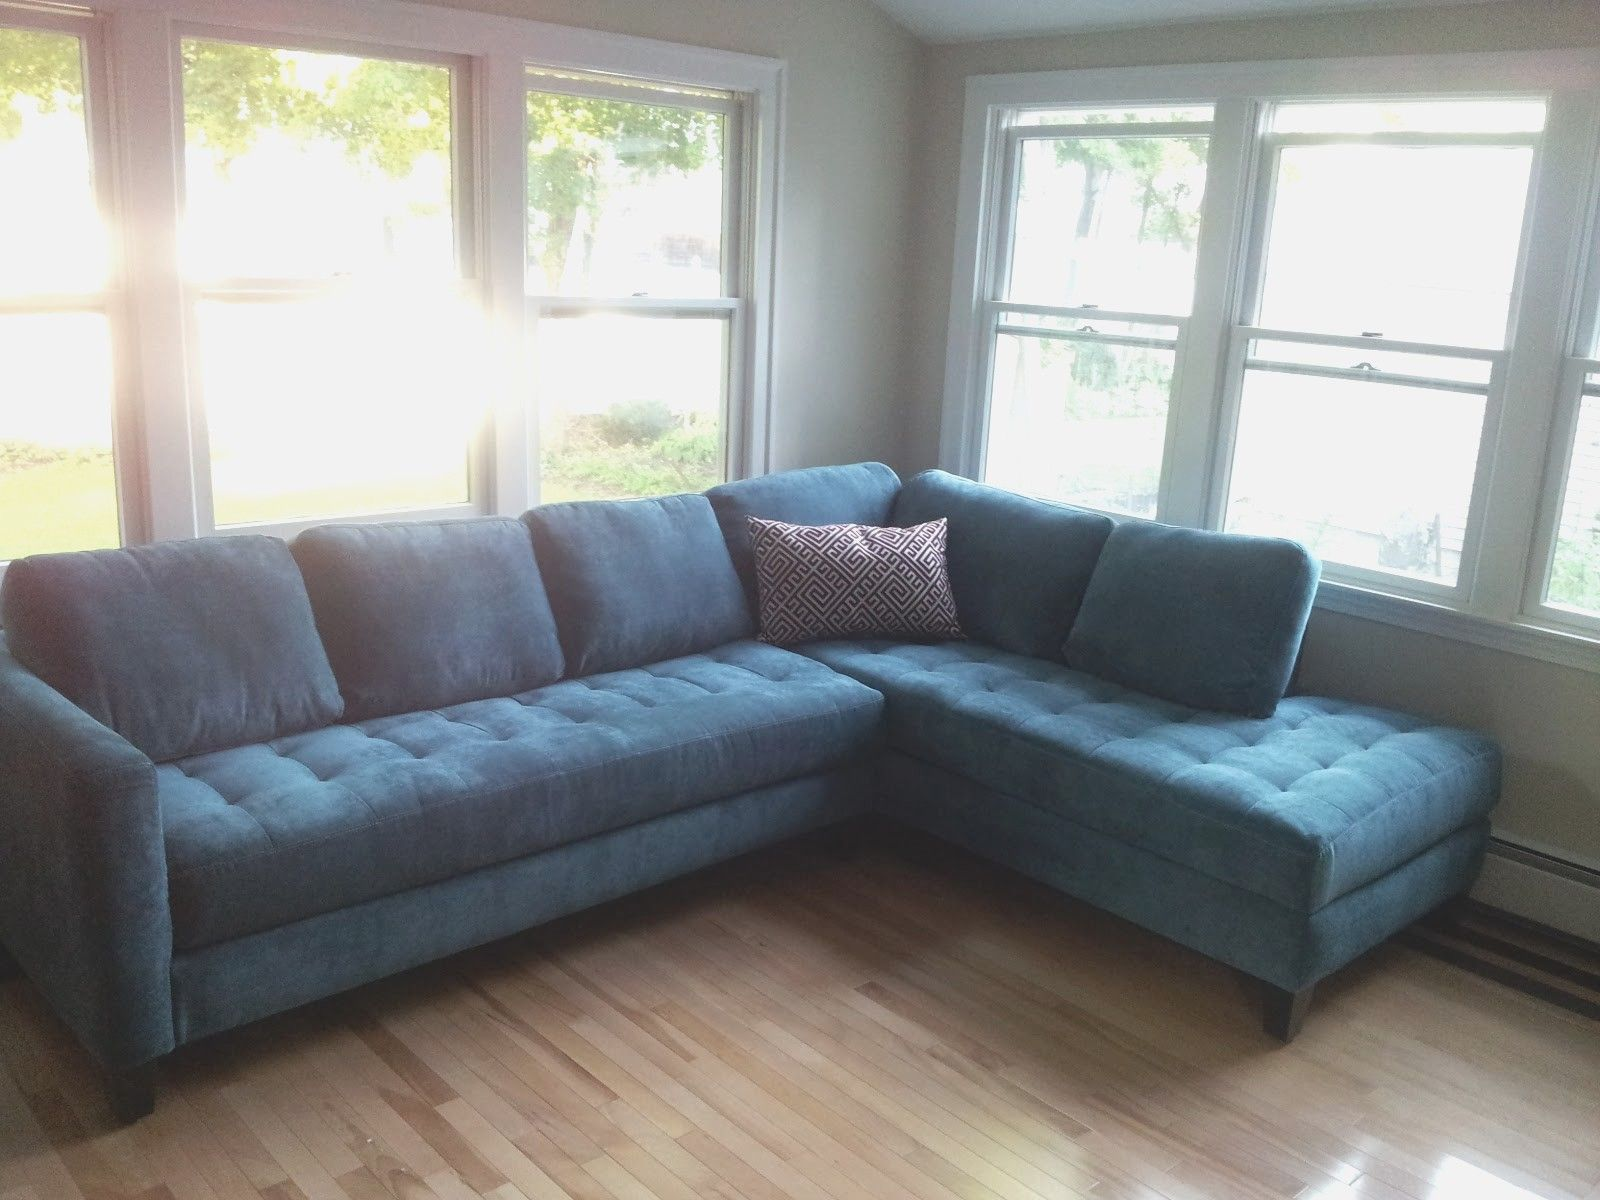 Sectional Sofas For Small Living Rooms Arrange Sectional Sofa Small Living Room Best Sectional Sofa For Small Living R Living Room Design Ideas